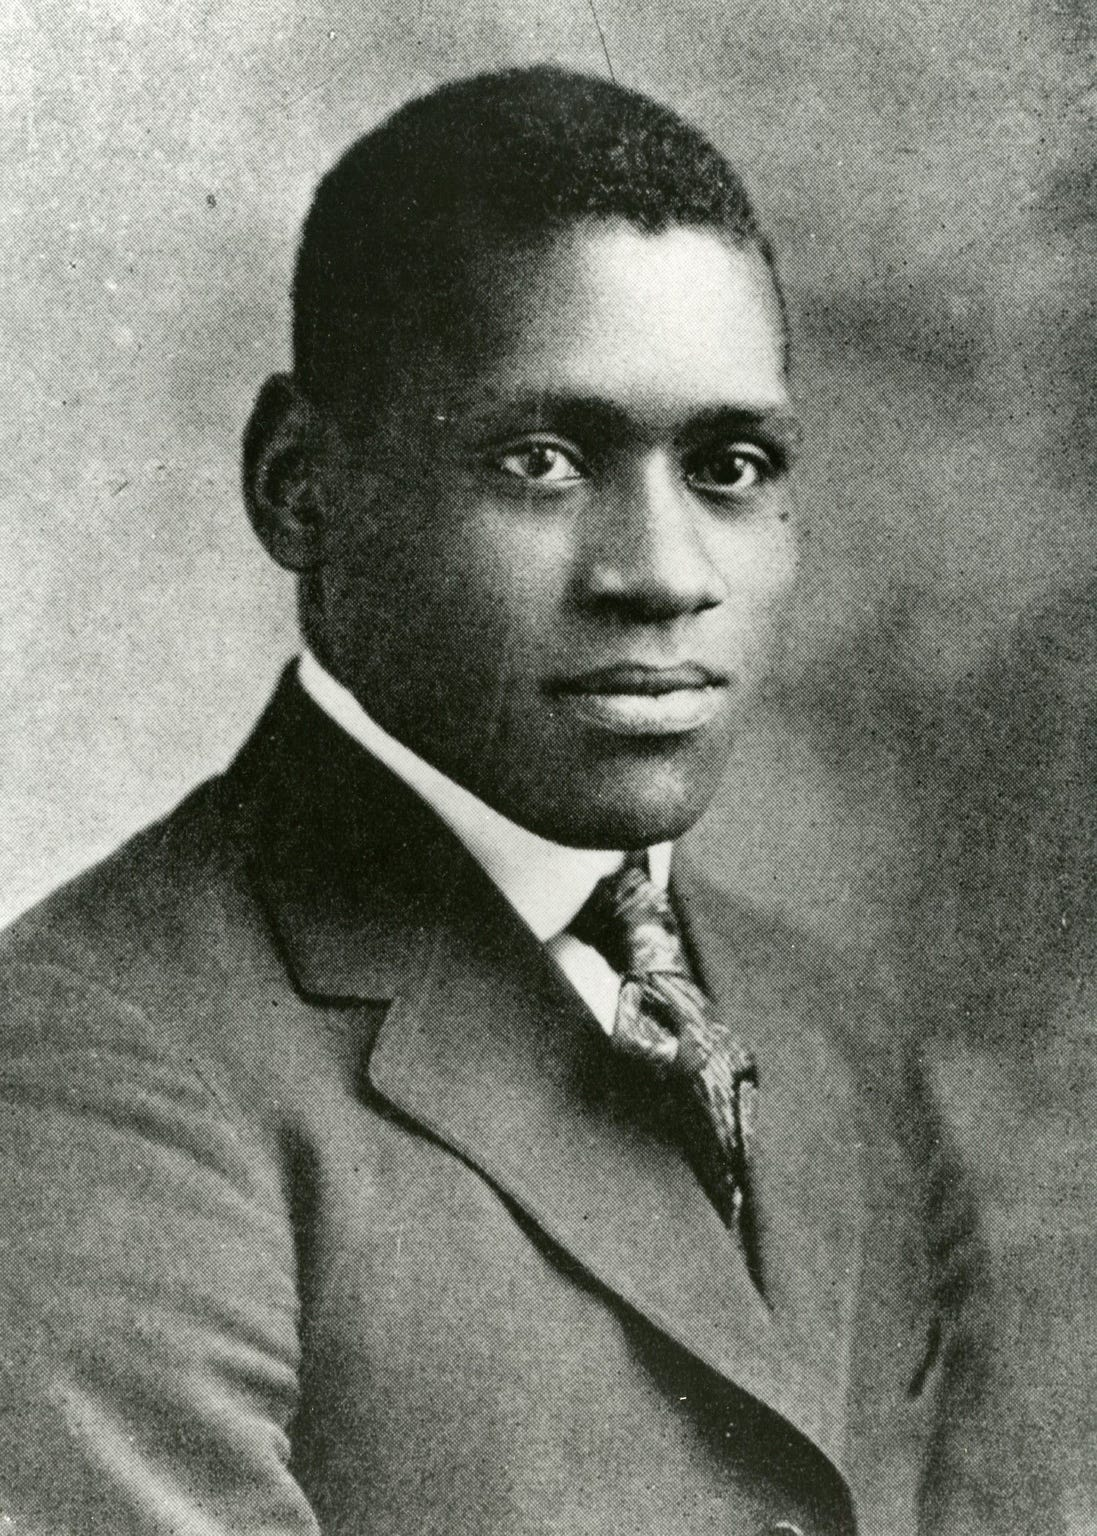 Famed singer-actor-activist-athlete-scholar Paul Robeson grew up in Somerville and graduated from Rutgers University. He will be honored by his alma mater with Paul Robeson Plaza in celebration of the centennial of his graduation.